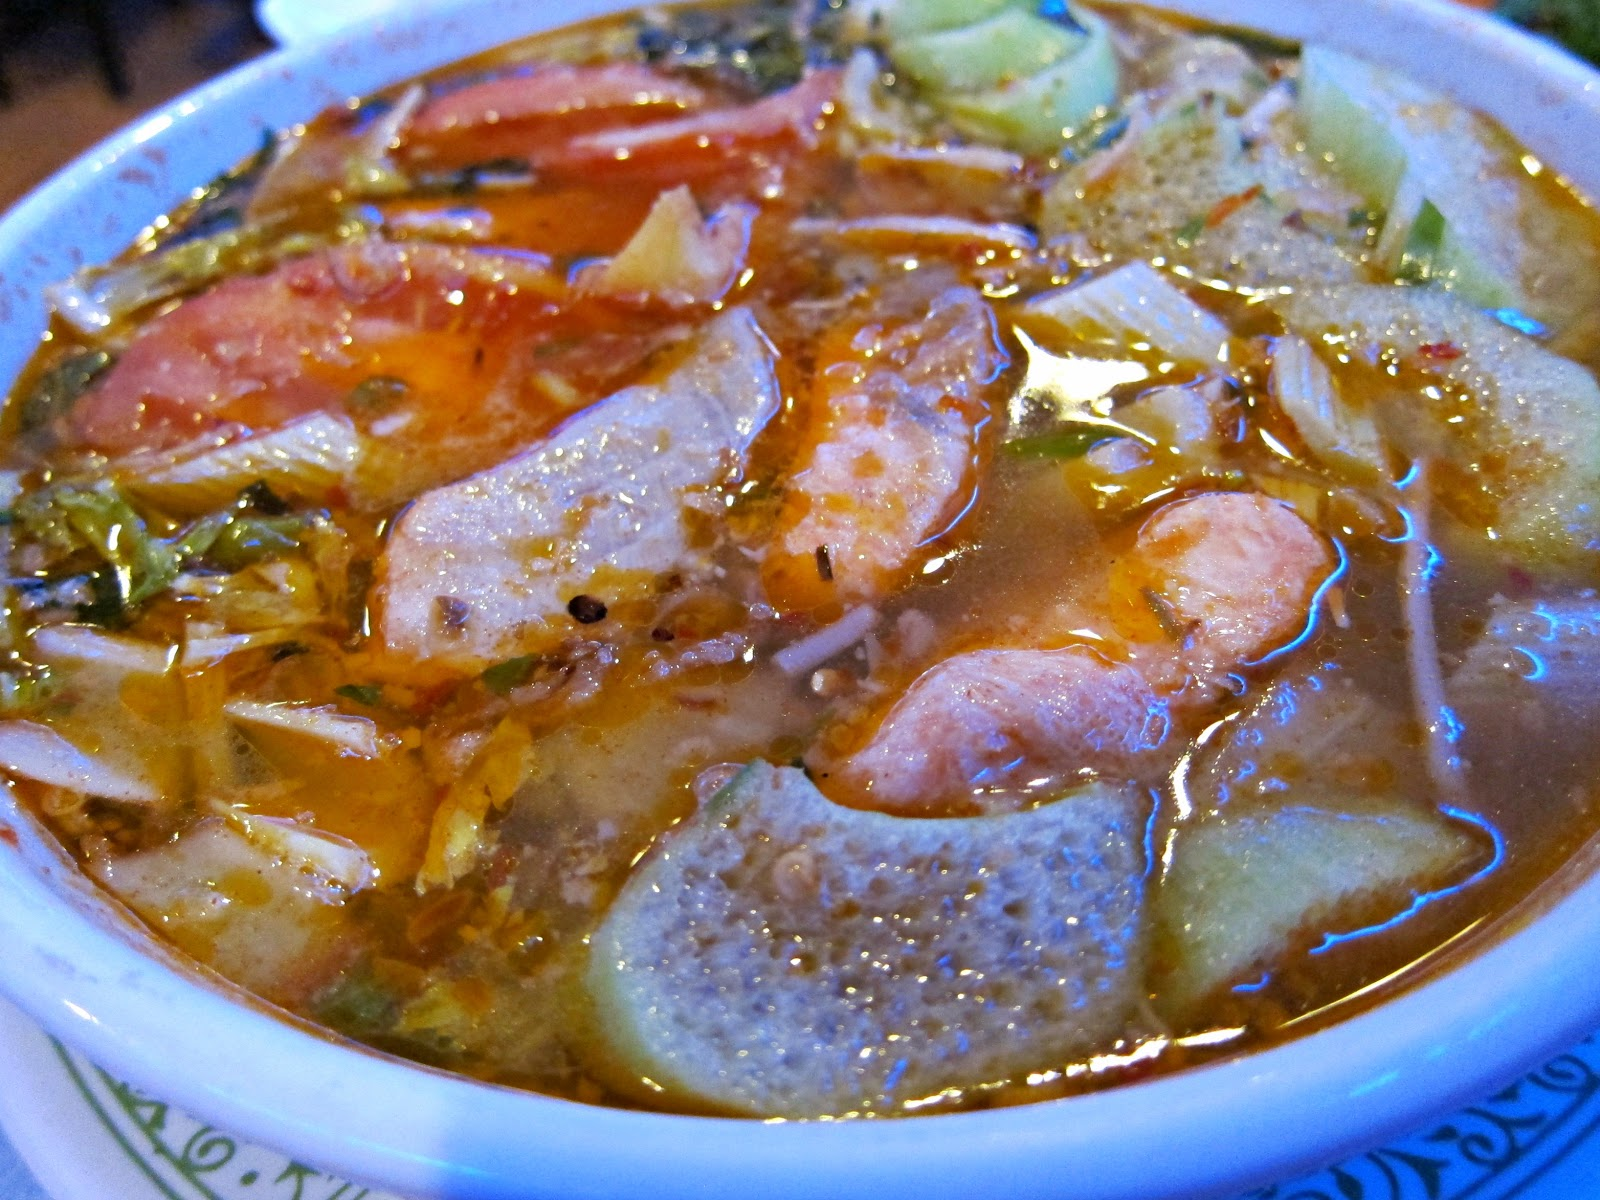 Vietnamese Sweet And Sour Soup Served Family Style